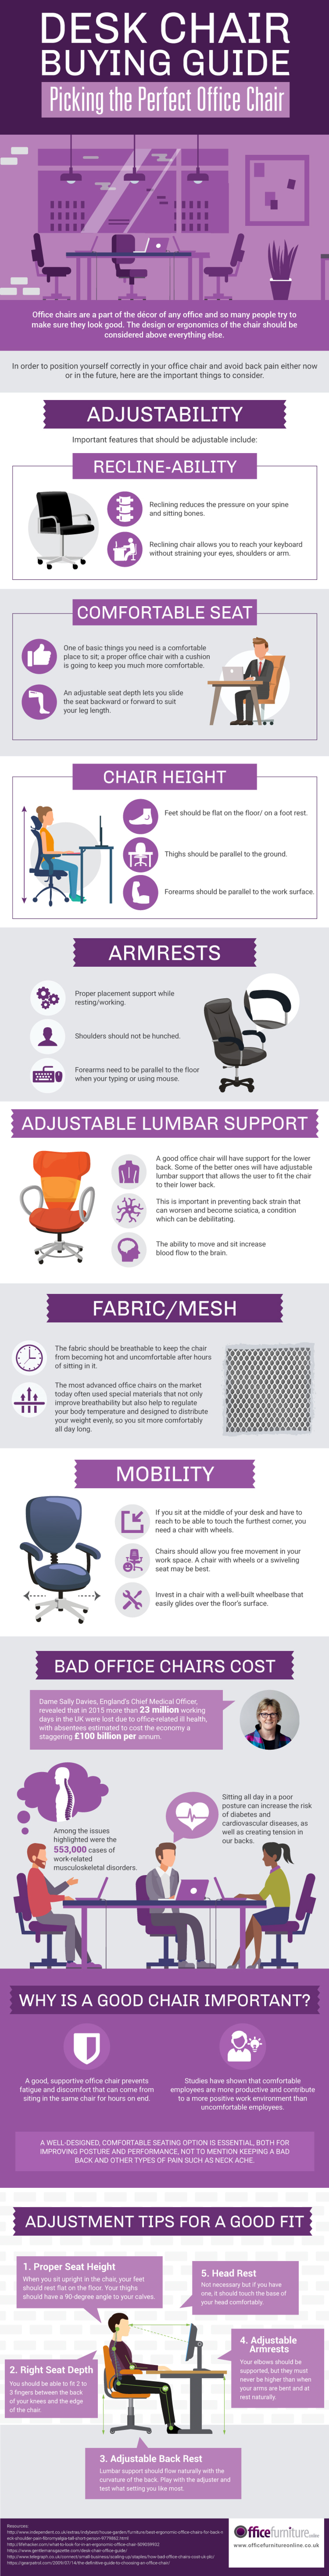 Desk Chair Buying Guide Infographic